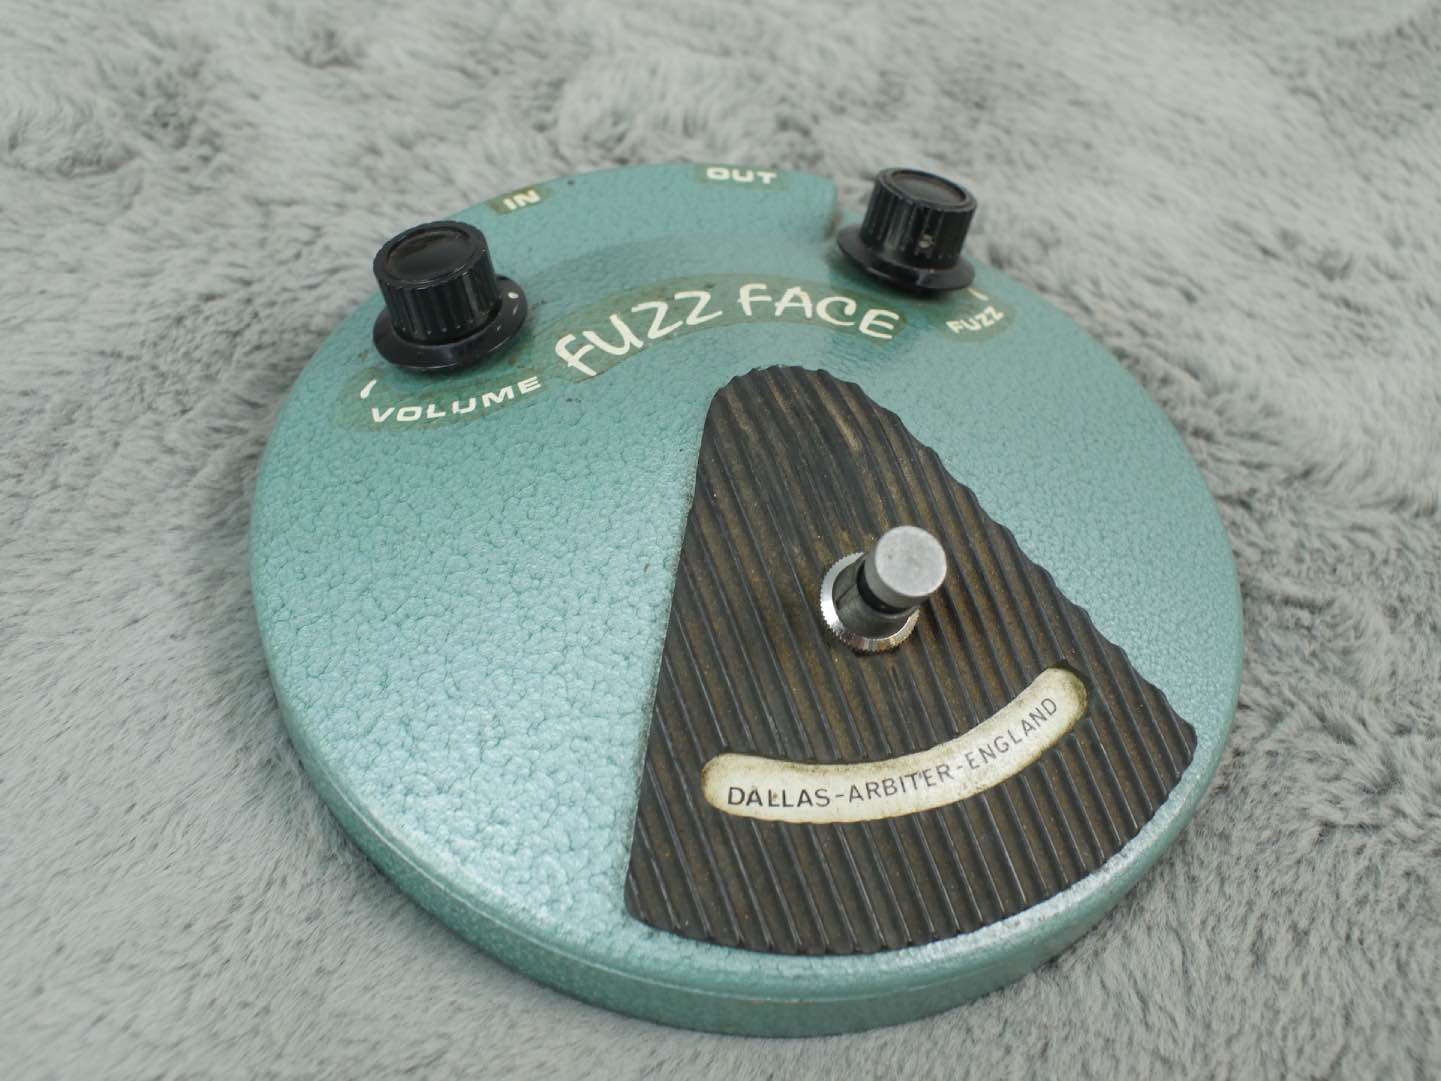 1971 Dallas Arbiter Fuzz Face